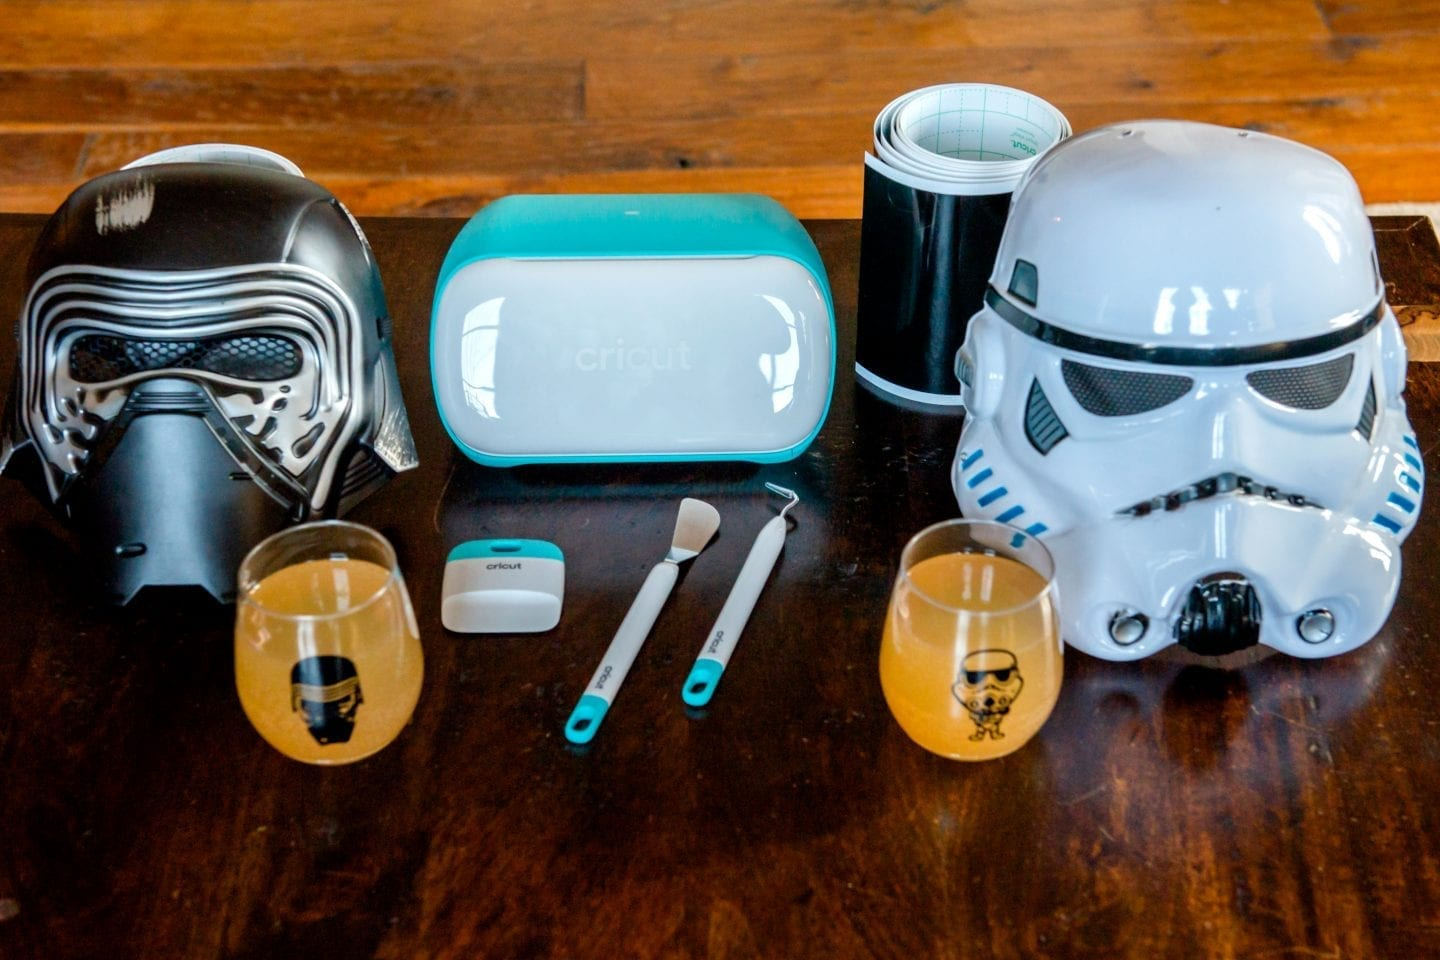 How to Make Star Wars Crafts with Cricut Joy?